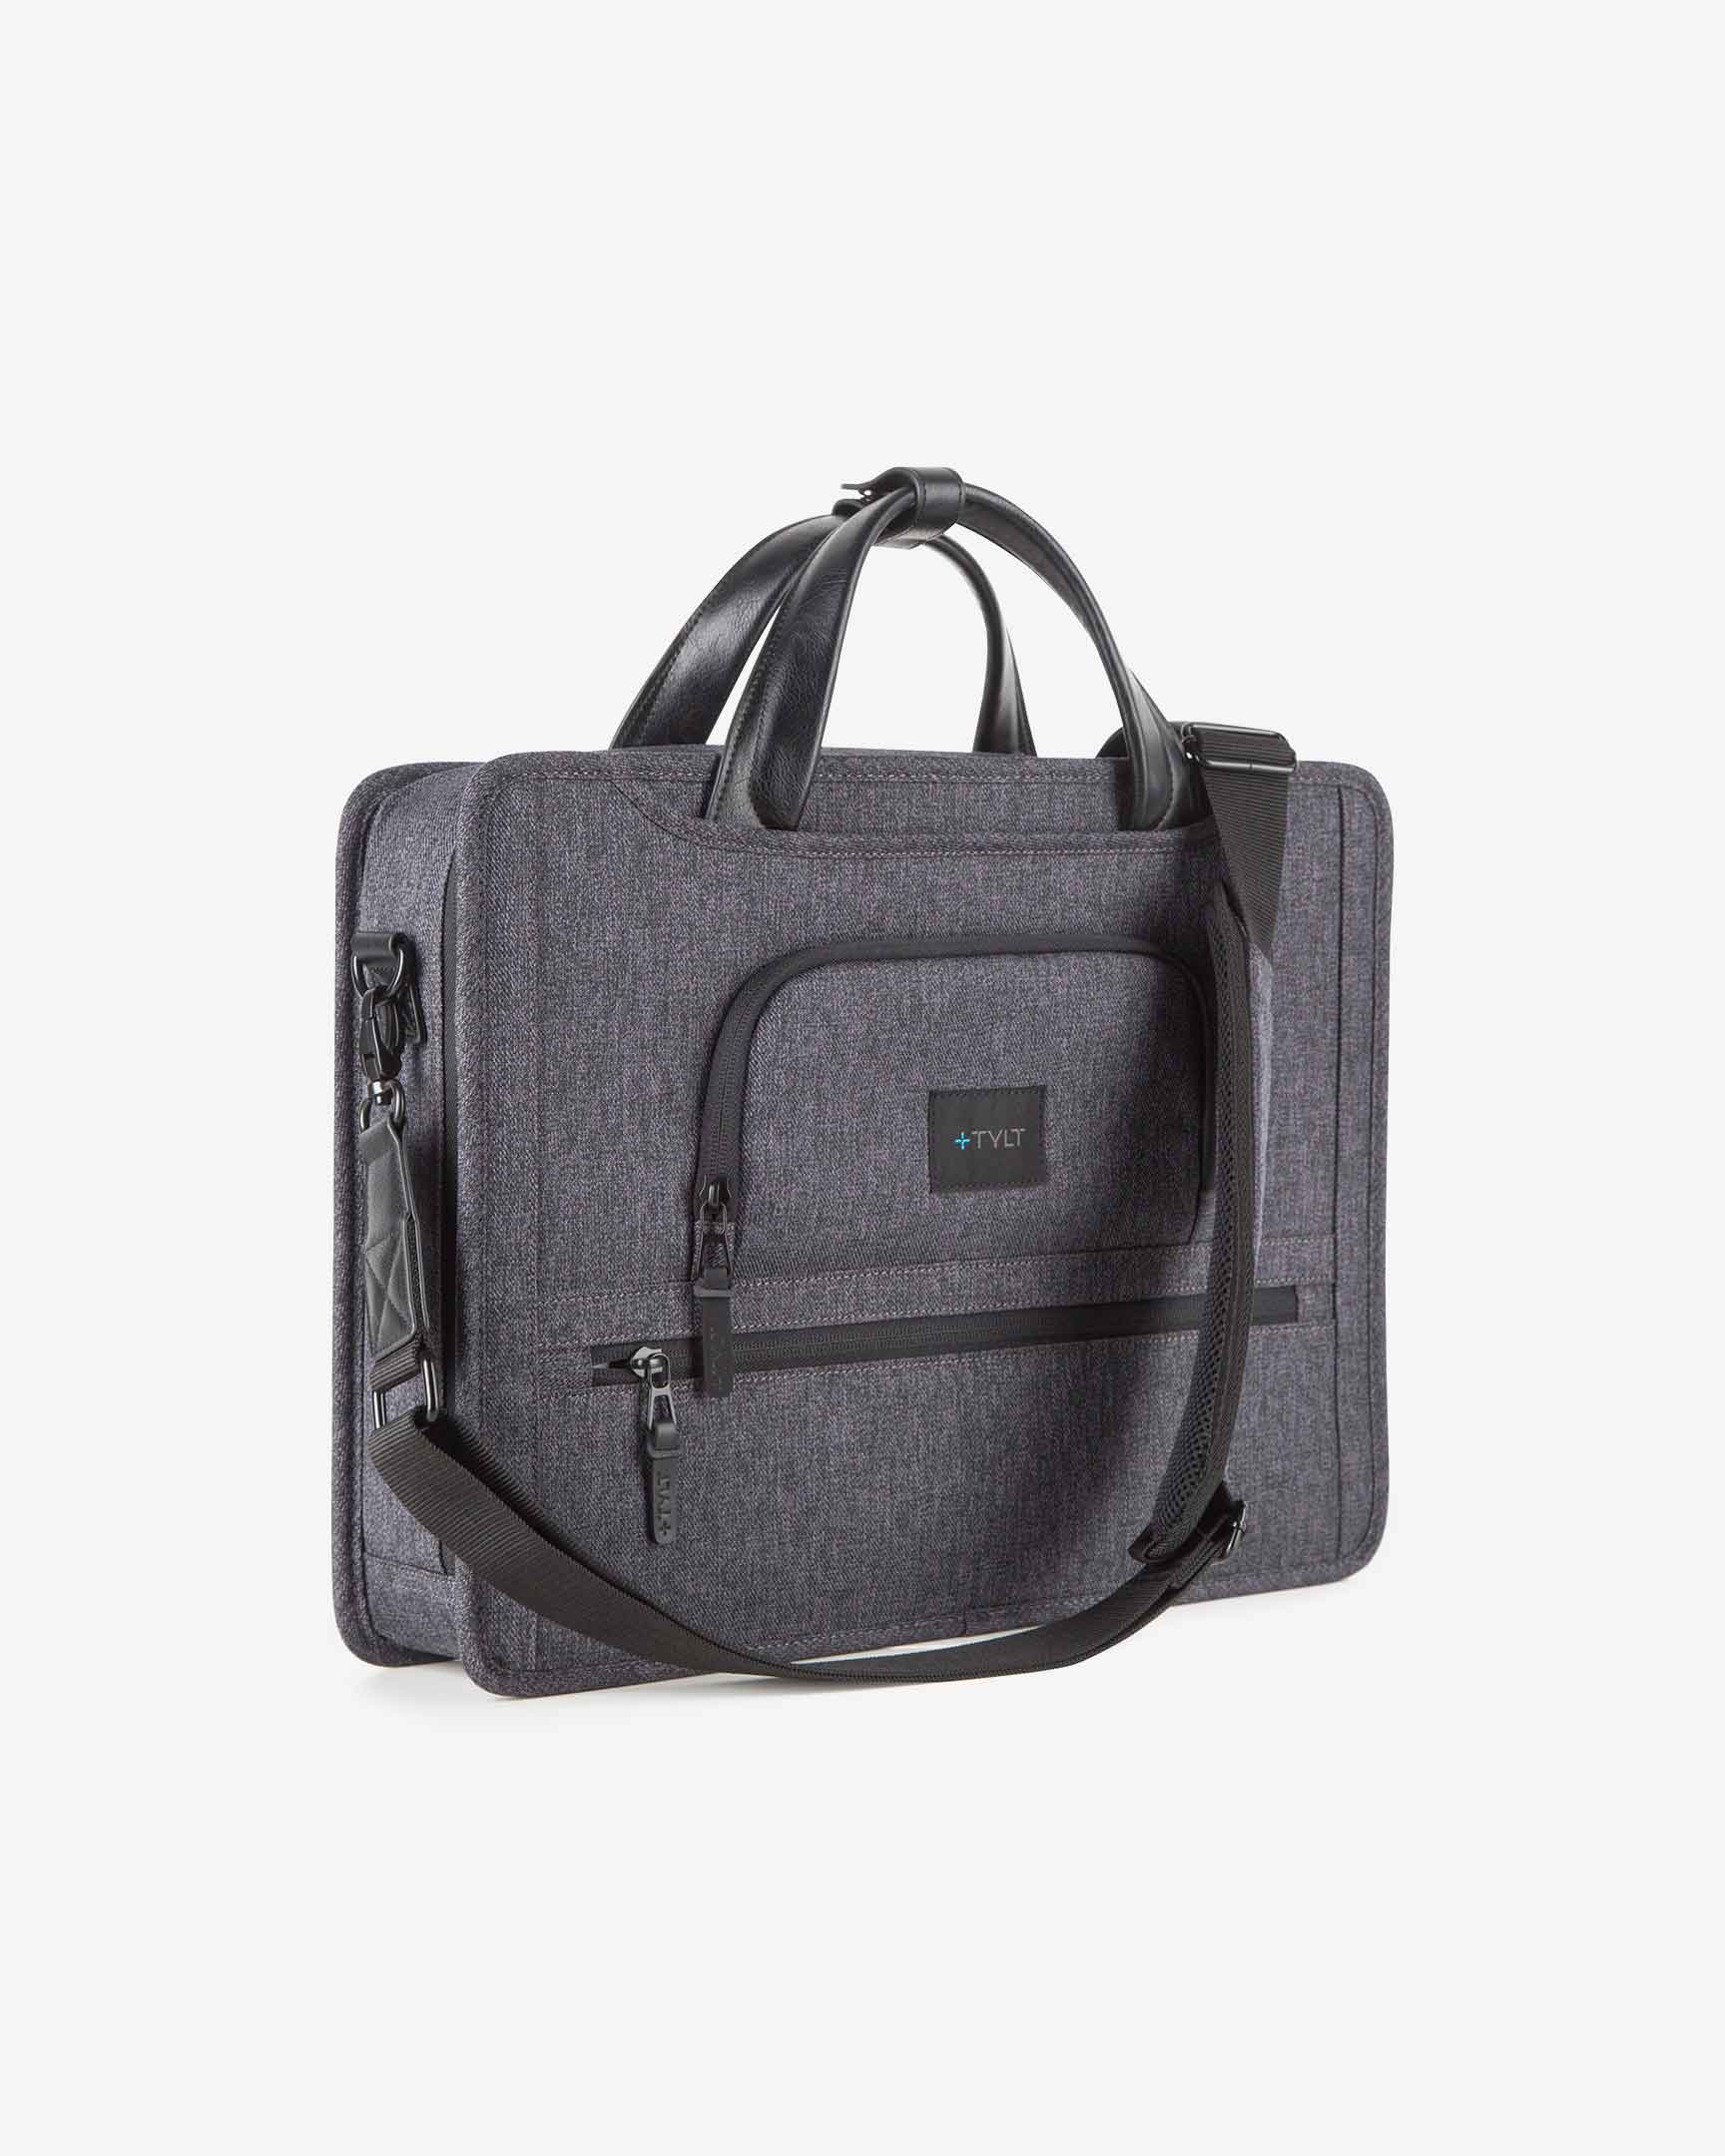 Executive Power Bag side view